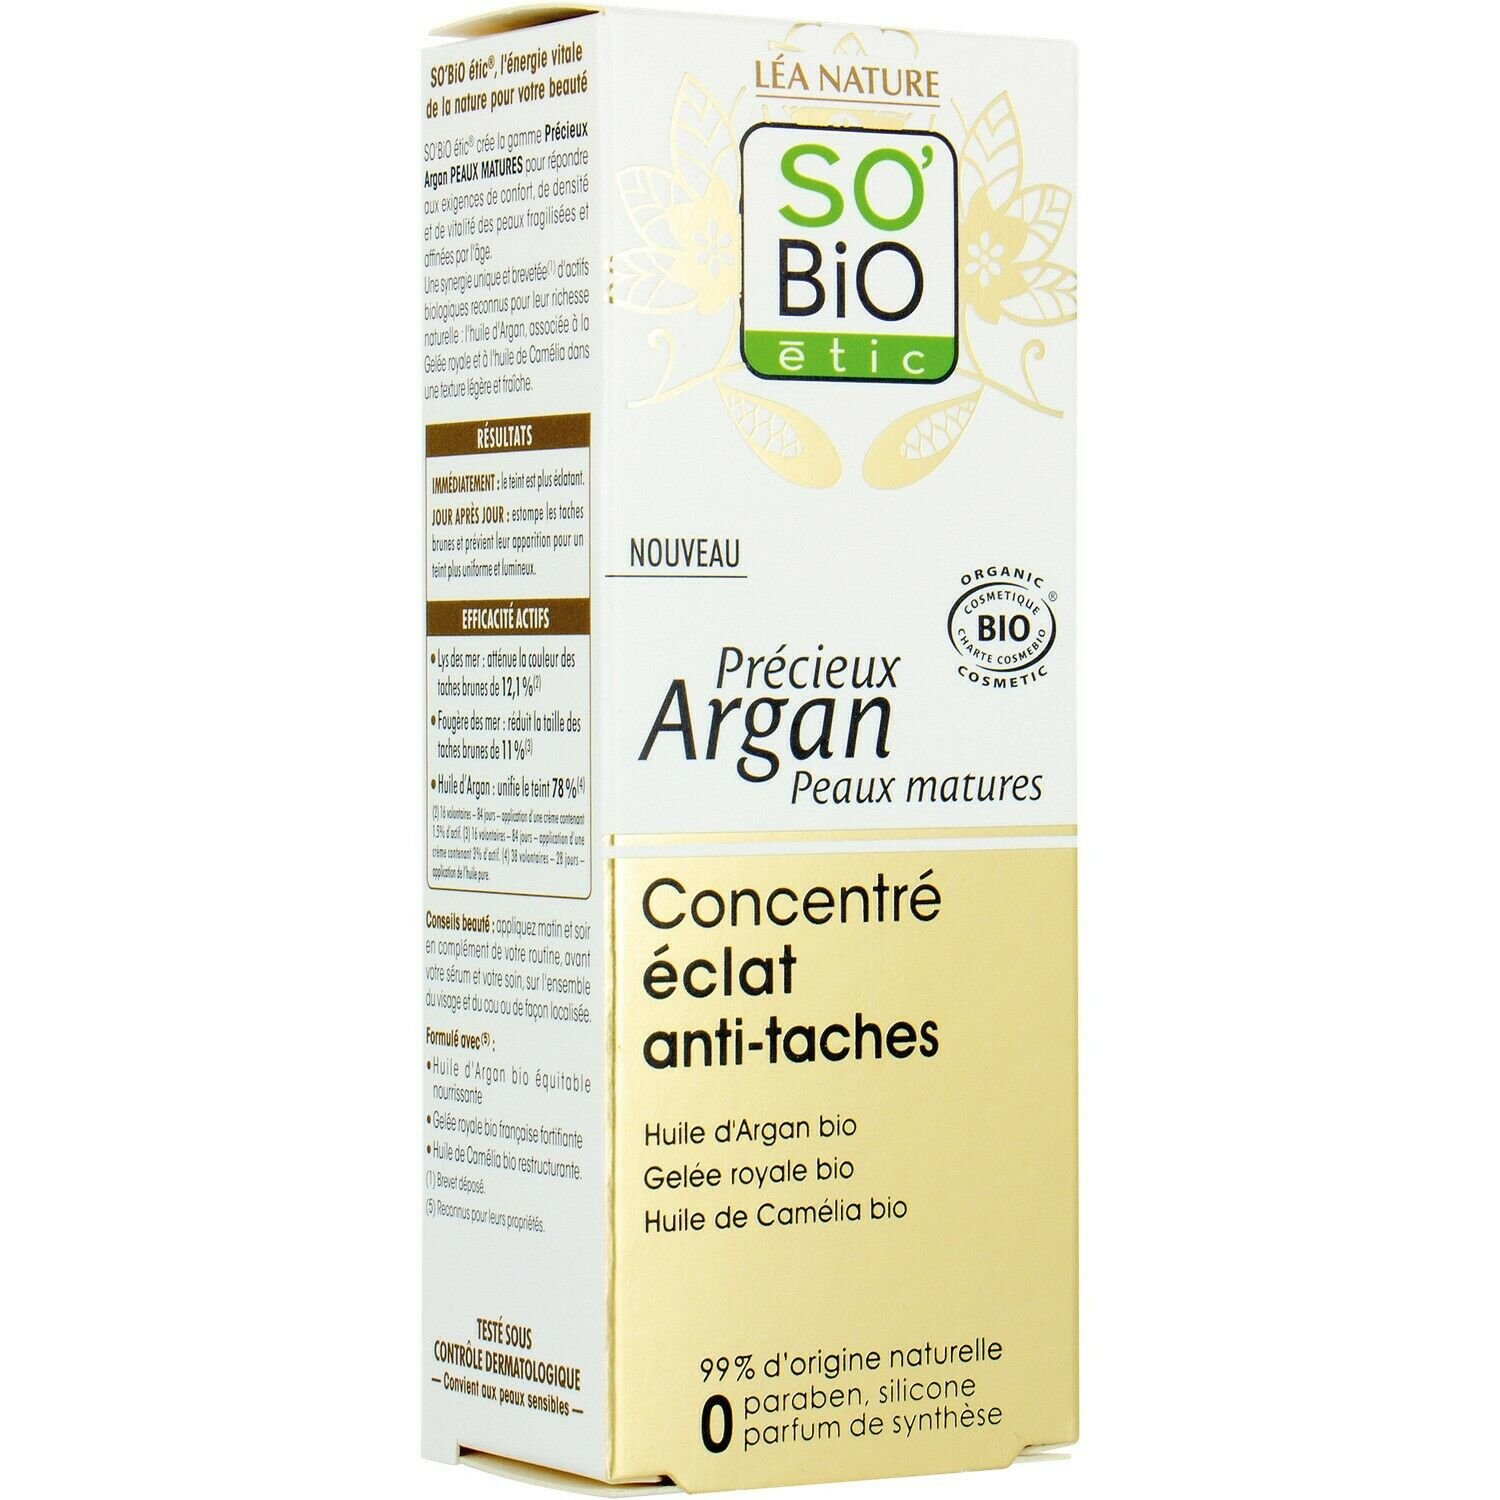 SO'BIO ETIC Argan Oil Concentrate Concentrate Anti Stain 40ml